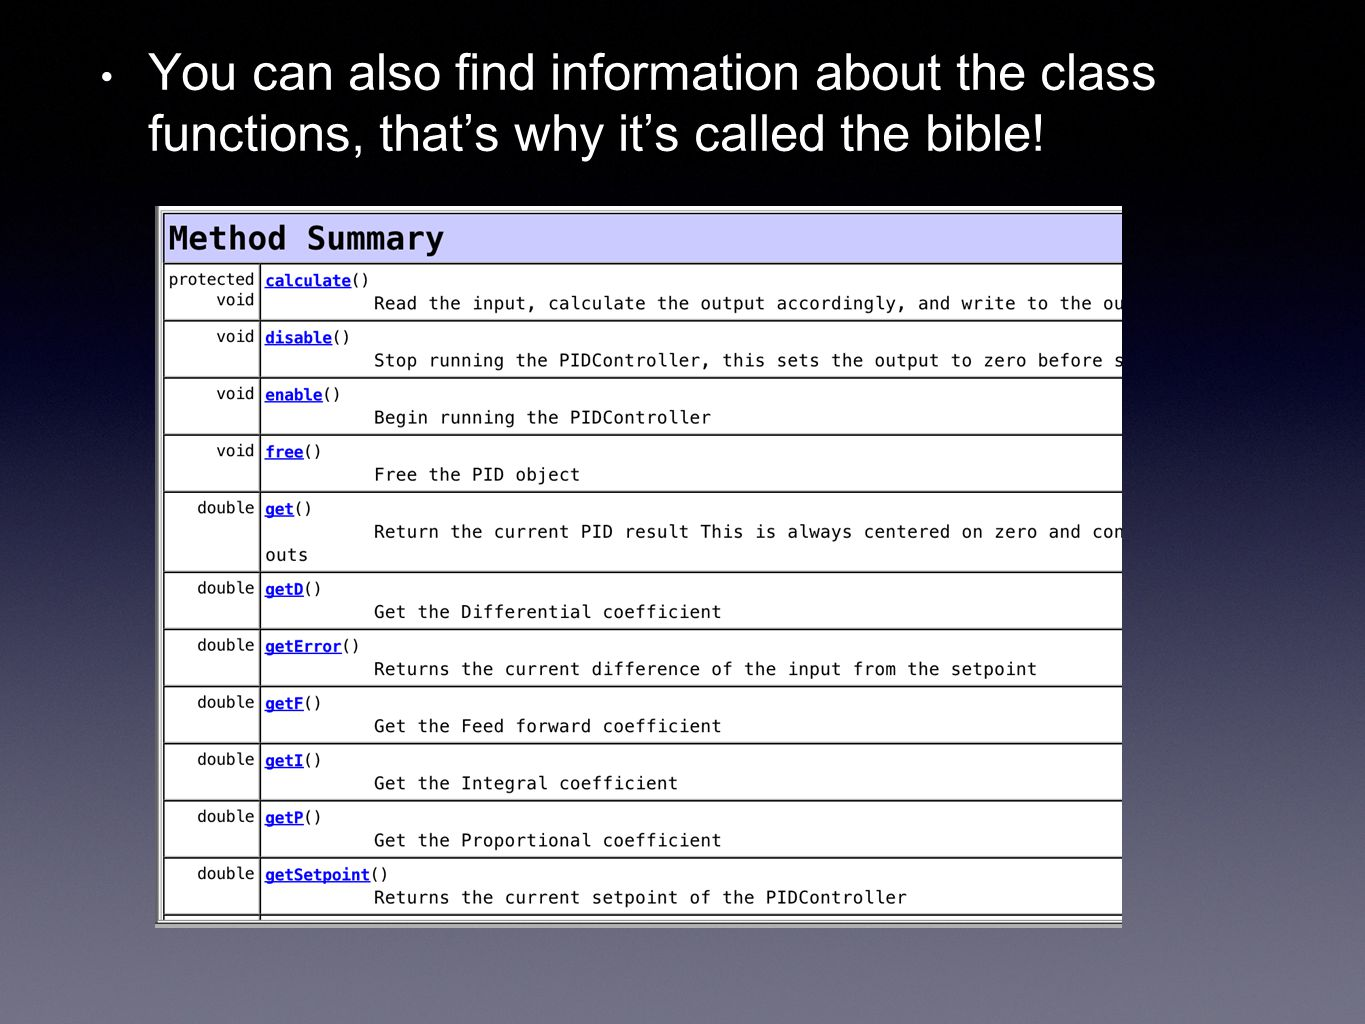 You can also find information about the class functions, that's why it's called the bible!